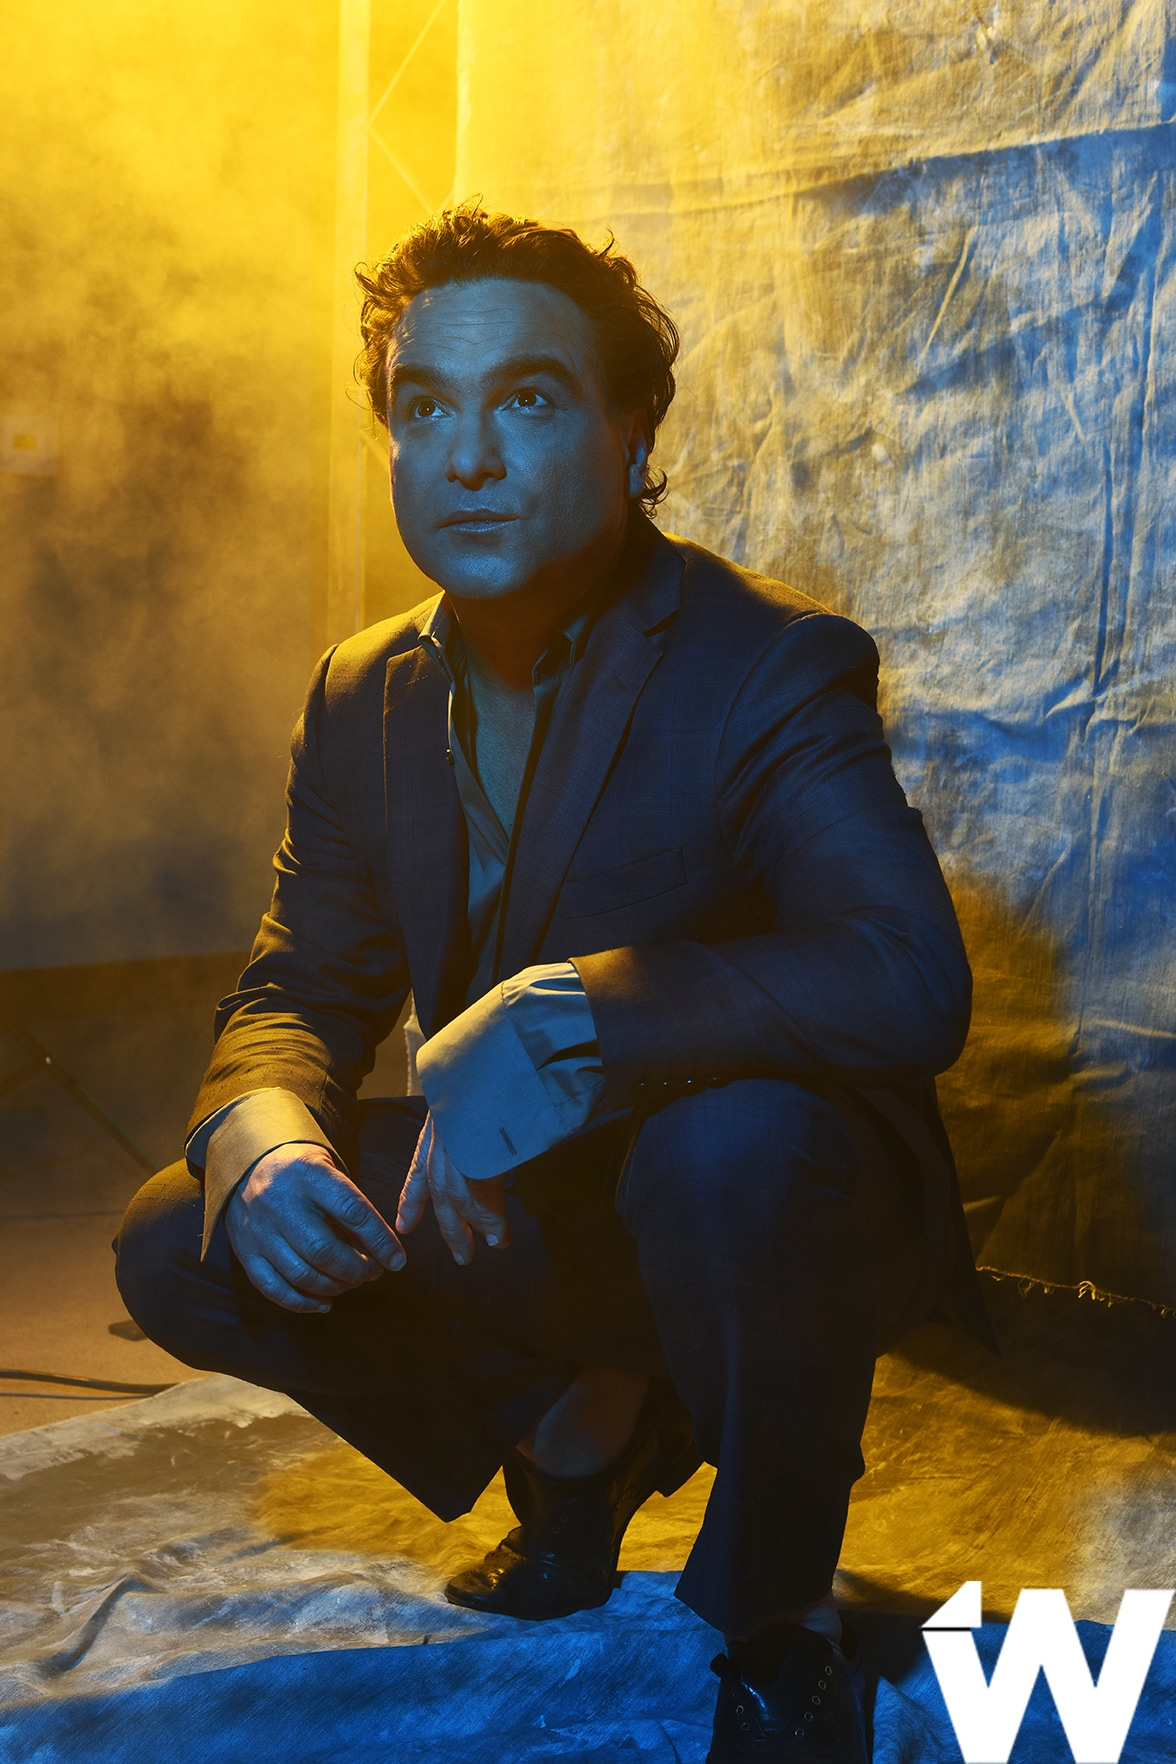 Johnny Galecki, The Big Bang Theory and Roseanne